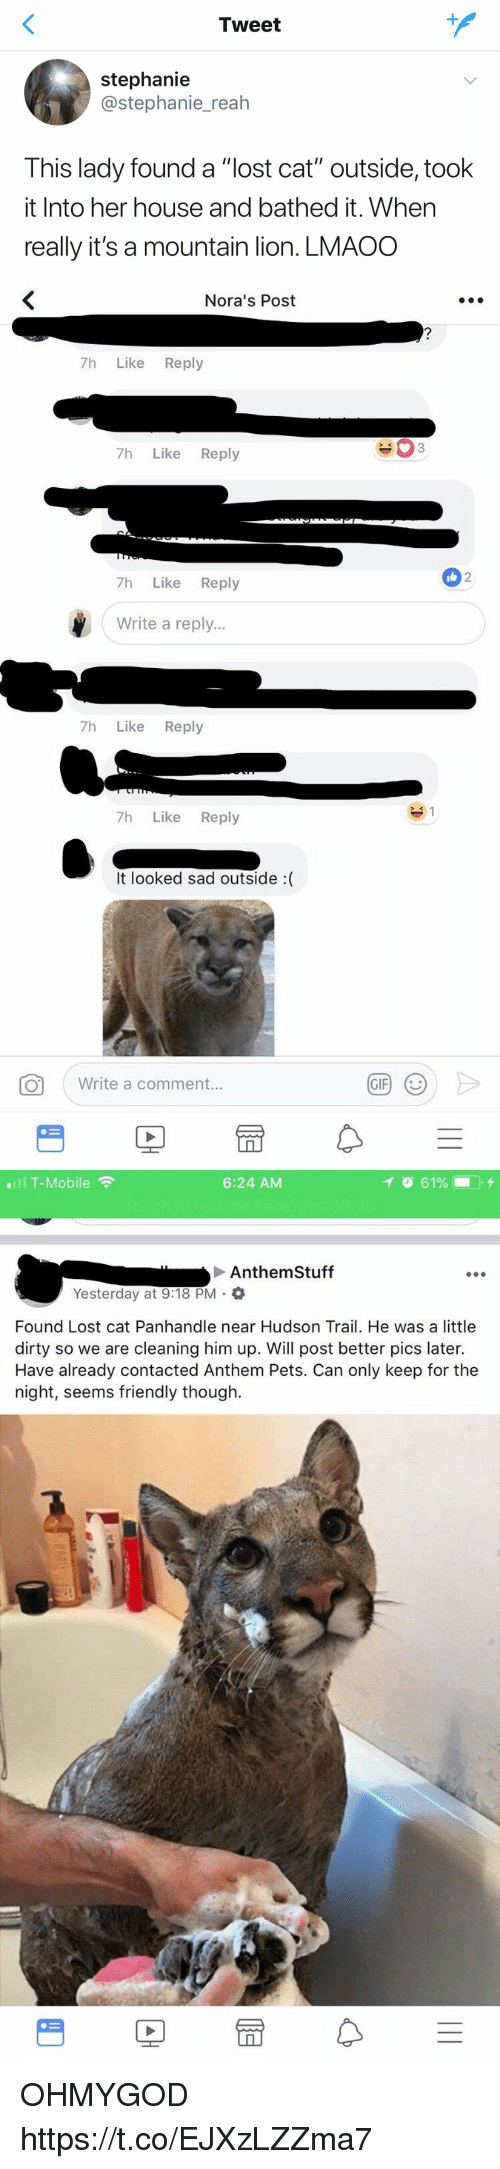 "Lost Cat: Tweet  stephanie  @stephanie_reah  This lady found a ""lost cat"" outside, took  it Into her house and bathed it. When  really it's a mountain lion. LMAOO   Nora's Post  7h Like Reply  7h Like Reply  2  7h Like Reply  Write a reply...  7h Like Reply  7h Like Reply  It looked sad outside :(  Write a comment.  GIF   .111 T-Mobile令  6:24 AM  イ  61%- . +  Anthem Stuff  Yesterday at 9:18 PM .  Found Lost cat Panhandle near Hudson Trail. He was a little  dirty so we are cleaning him up. Will post better pics later.  Have already contacted Anthem Pets. Can only keep for the  night, seems friendly though.  PE OHMYGOD https://t.co/EJXzLZZma7"